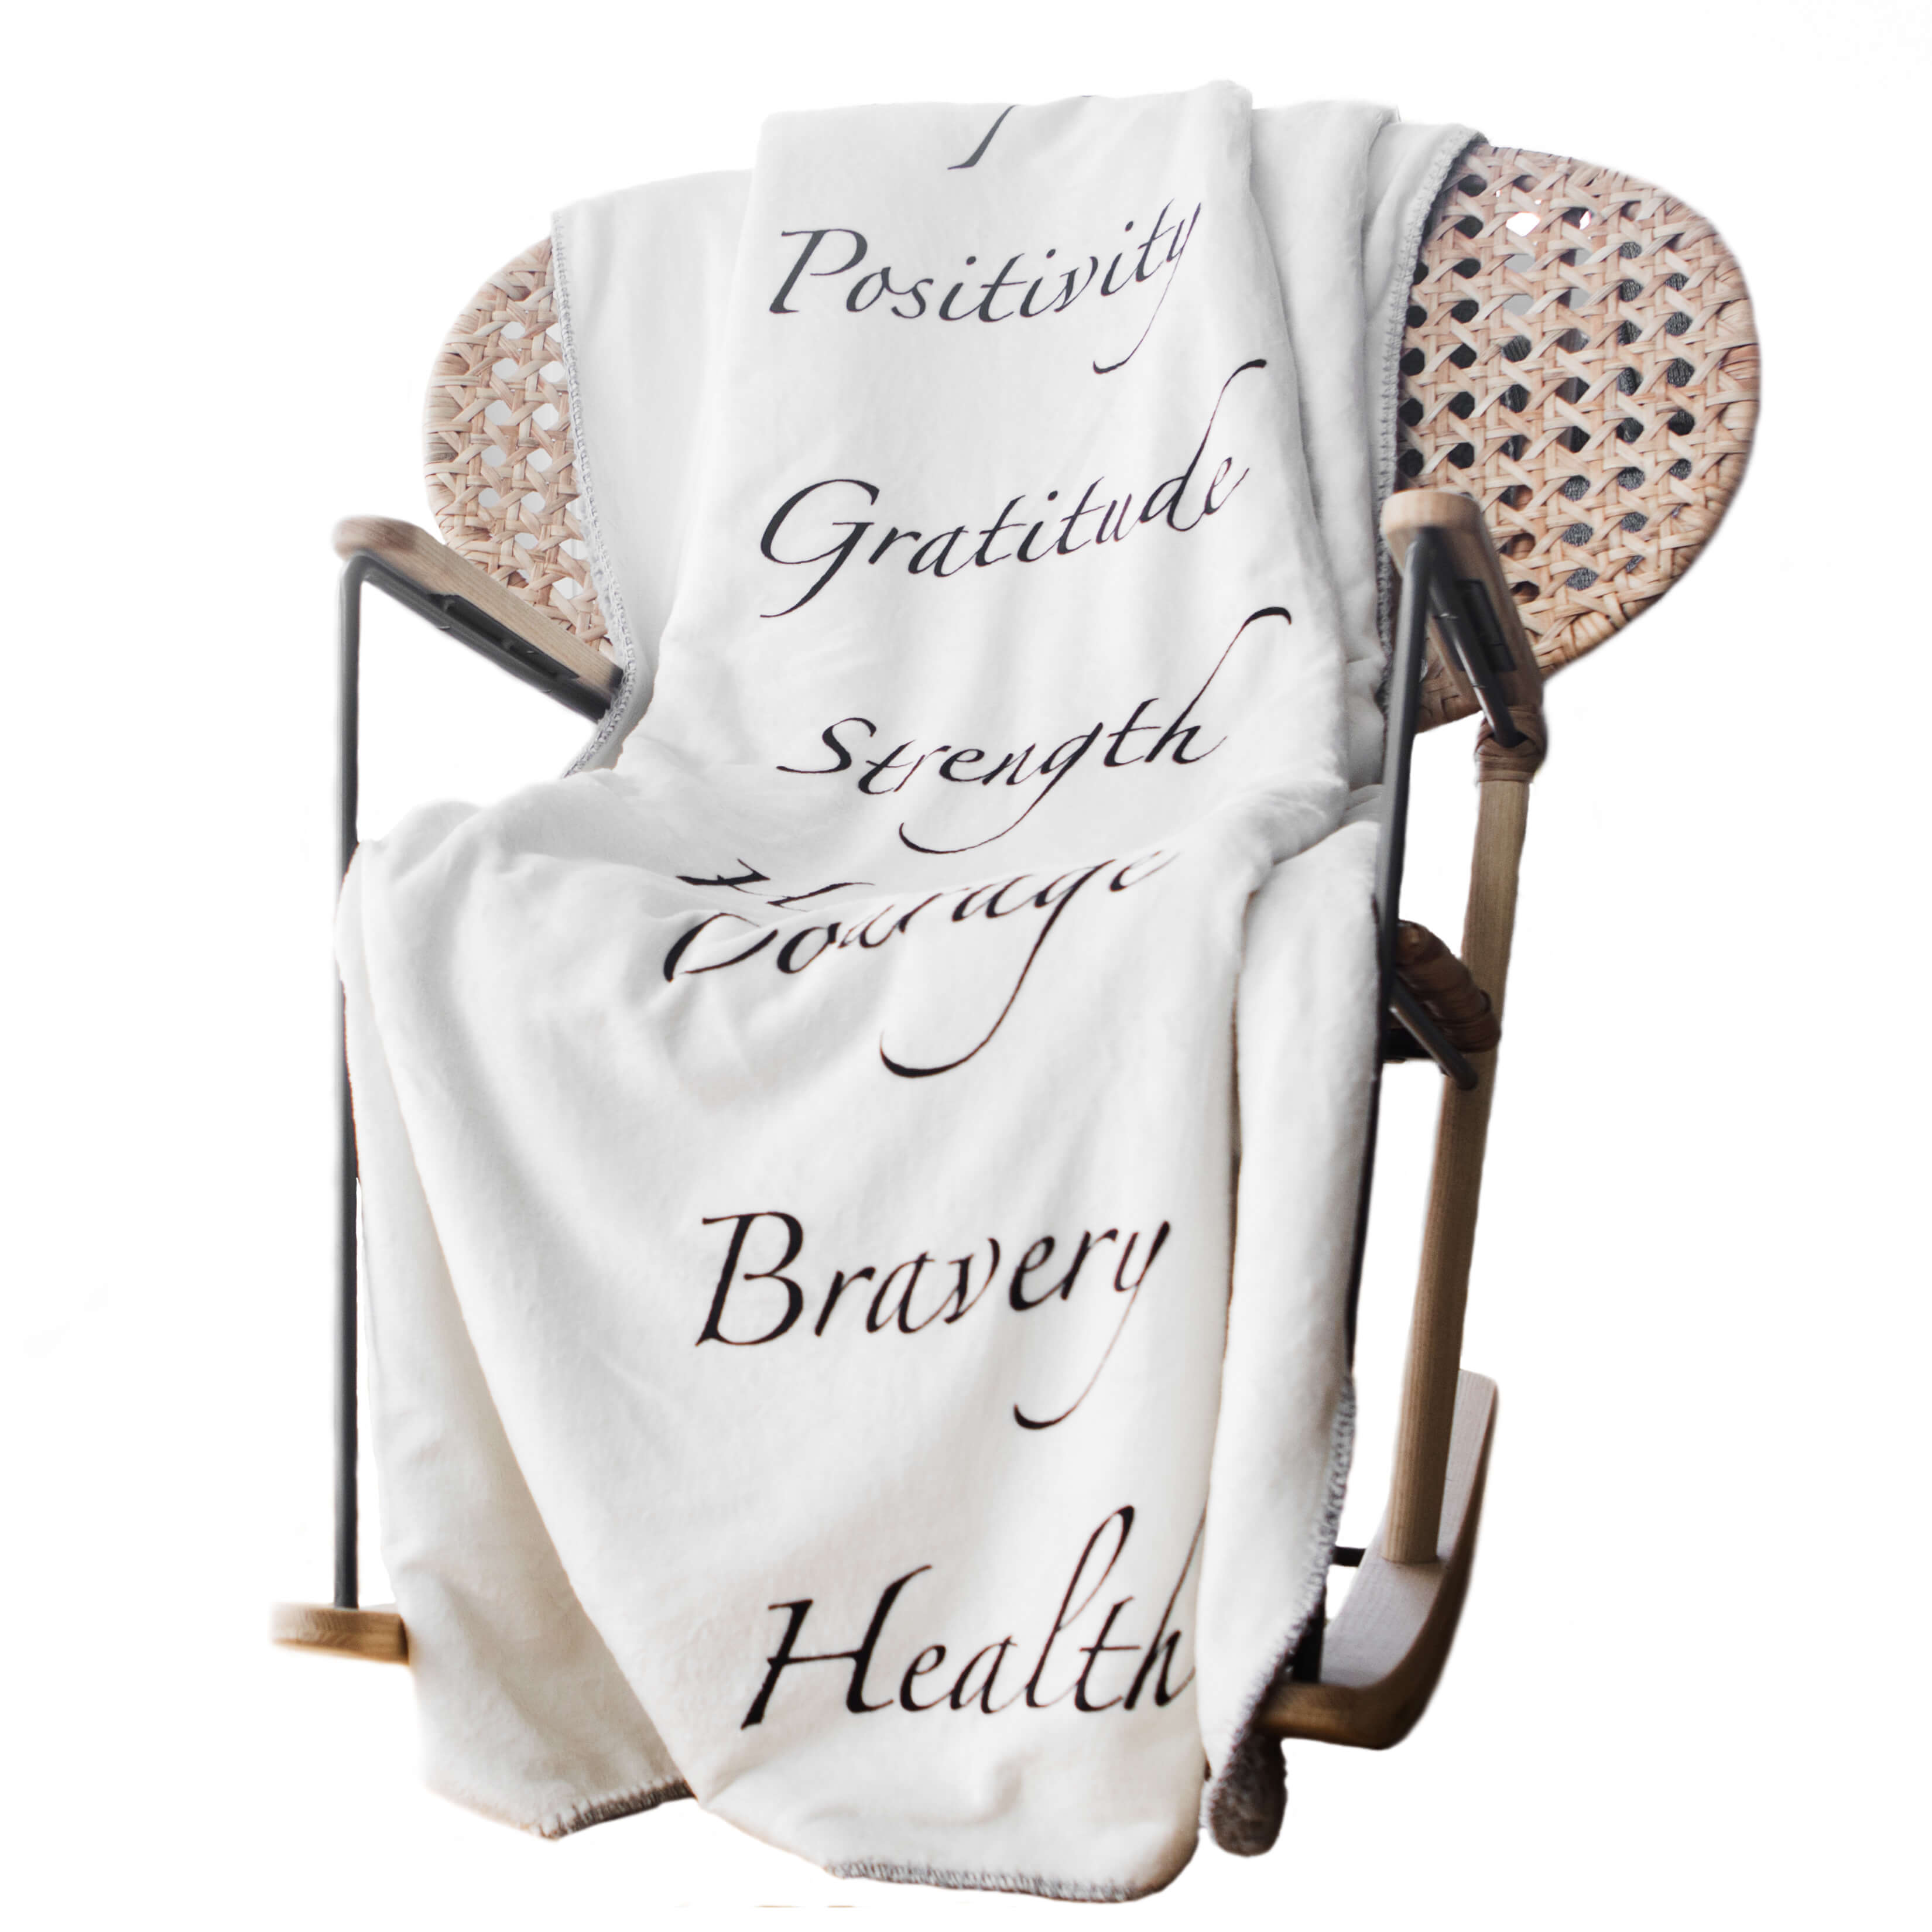 Healing Blanket with Inspirational Message